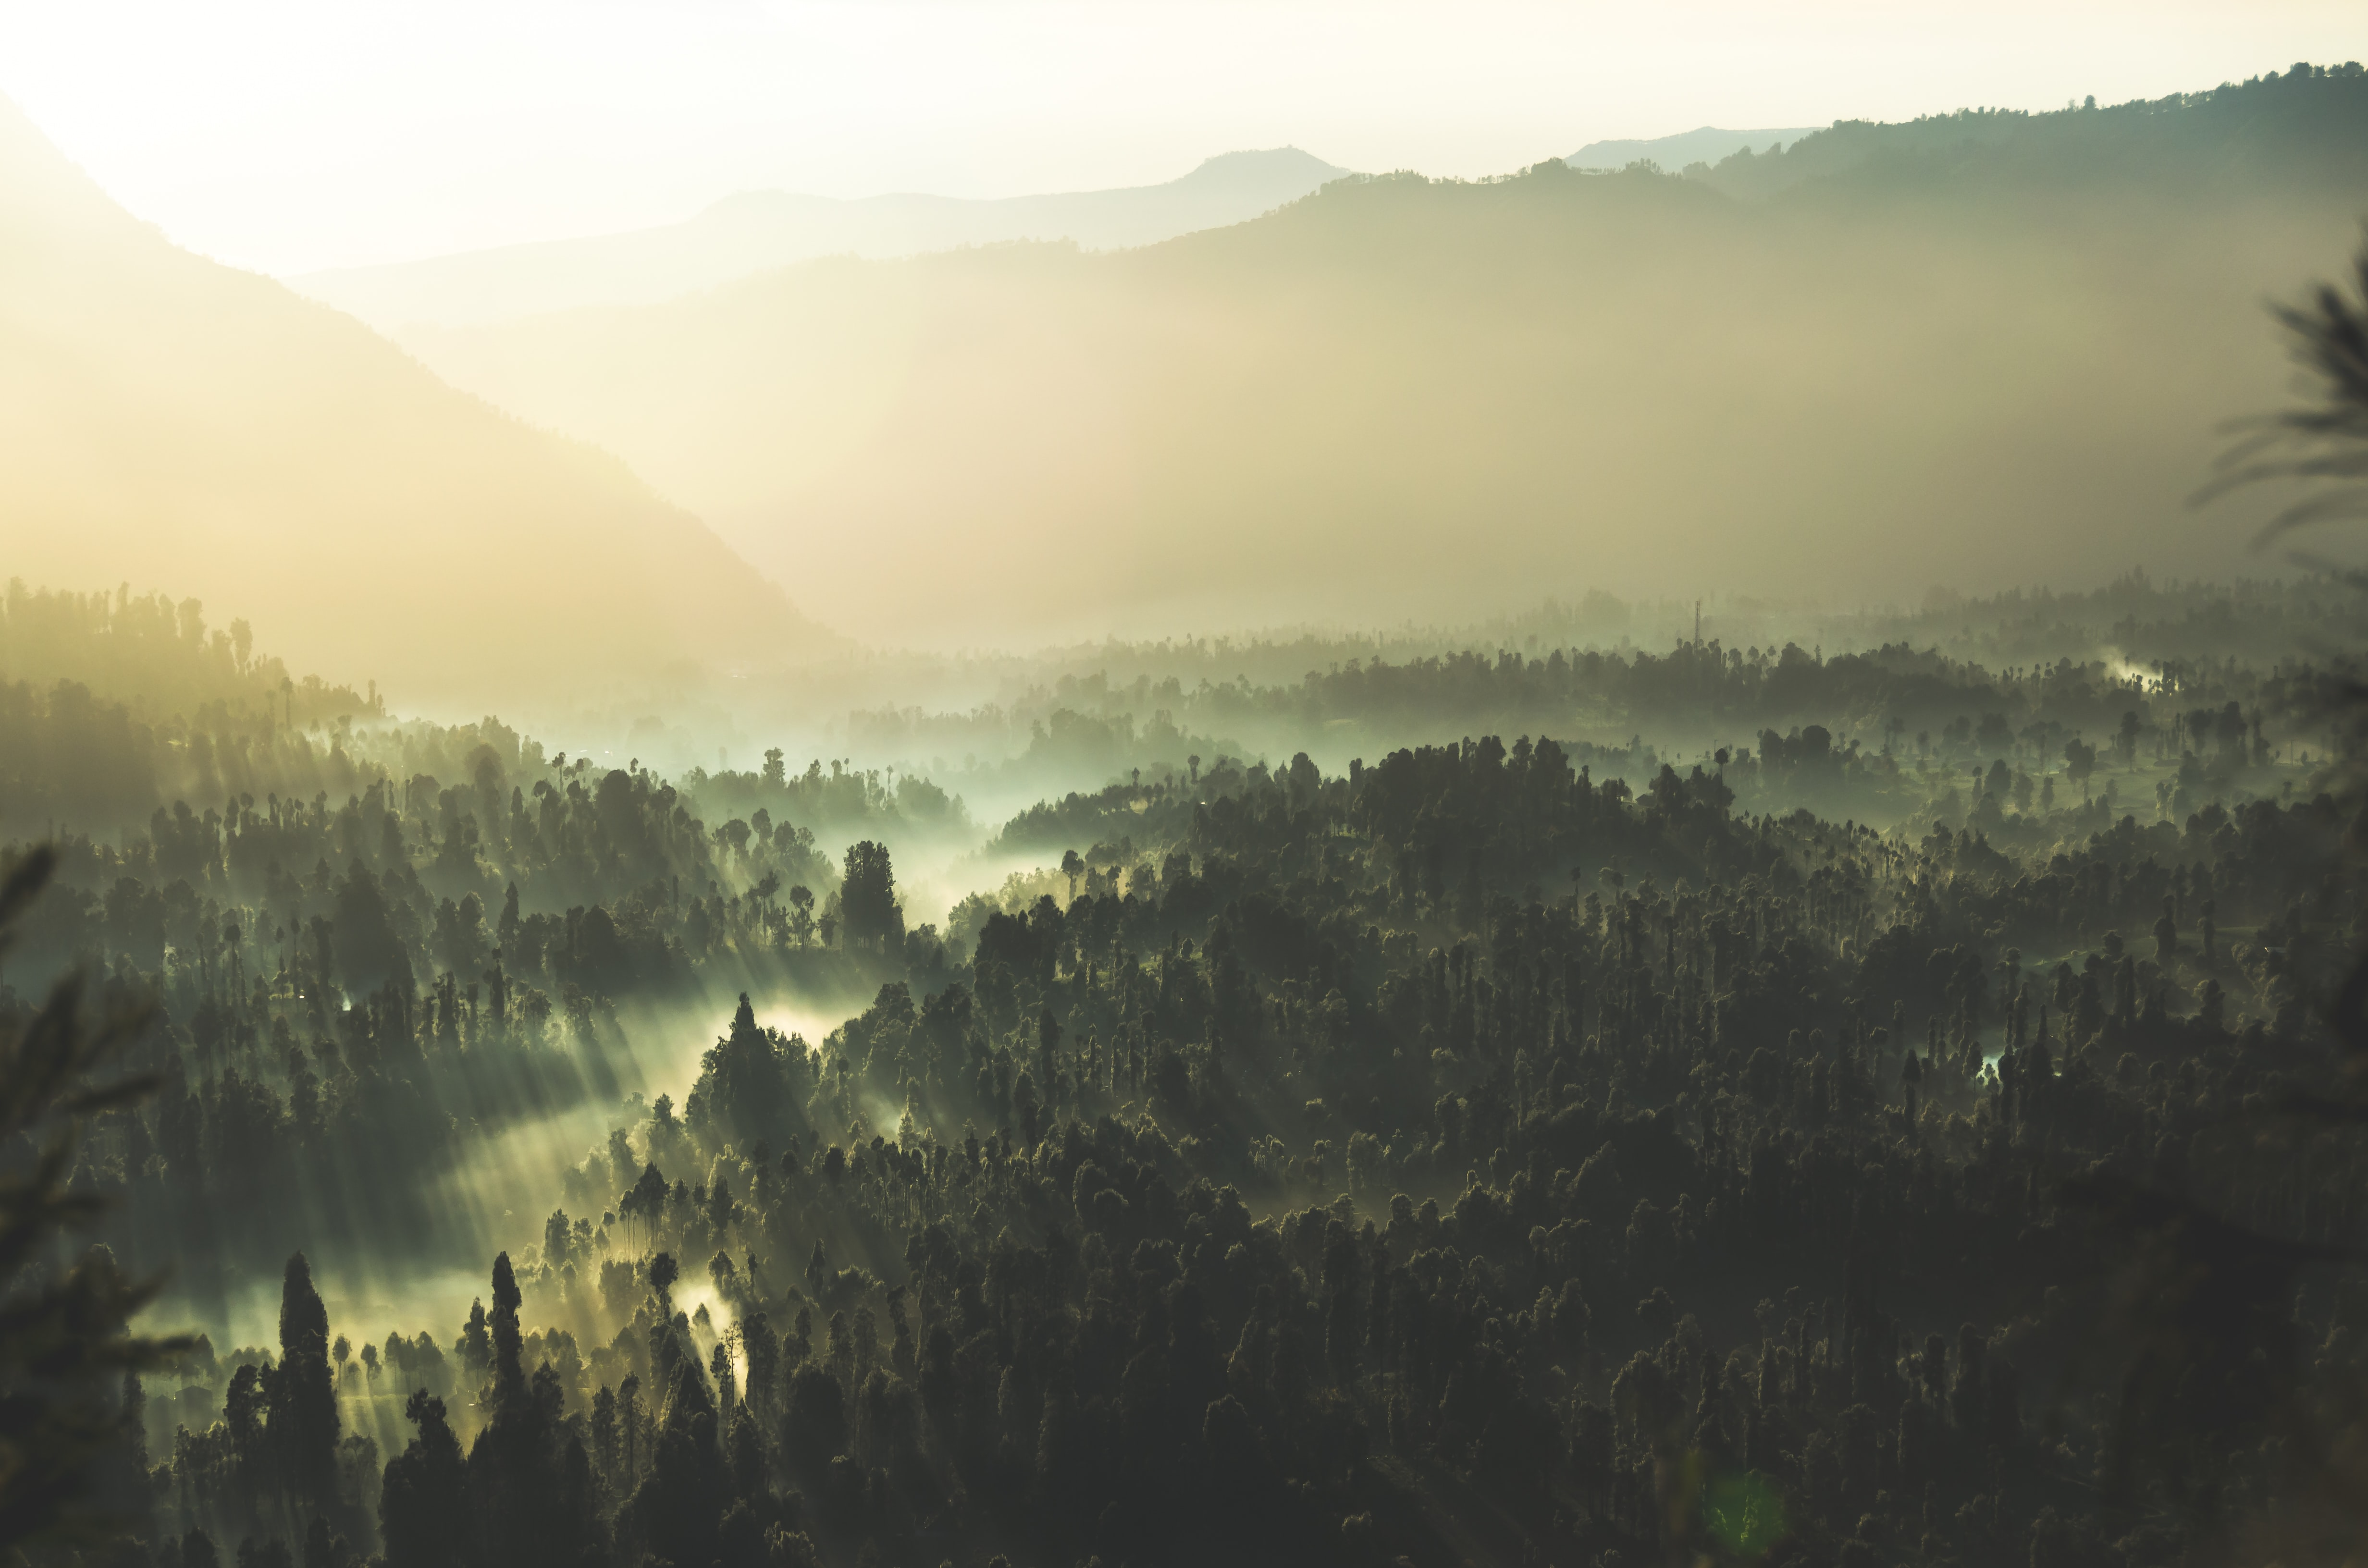 Rays of sun shining through the fog onto the trees of the Bromo Tengger Semeru National Park